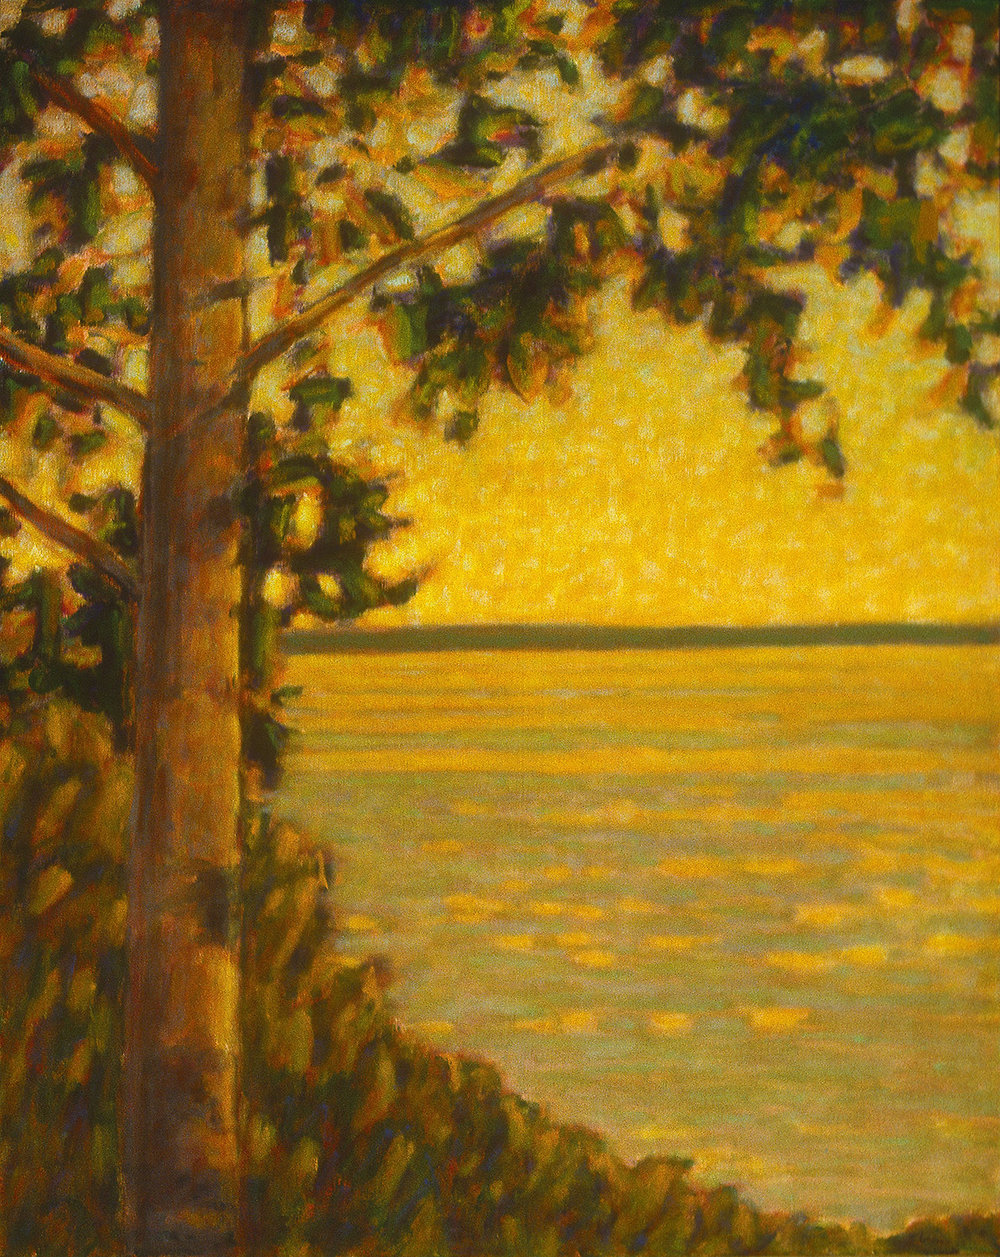 View From the Walking Trail | oil on canvas | 48 x 38"